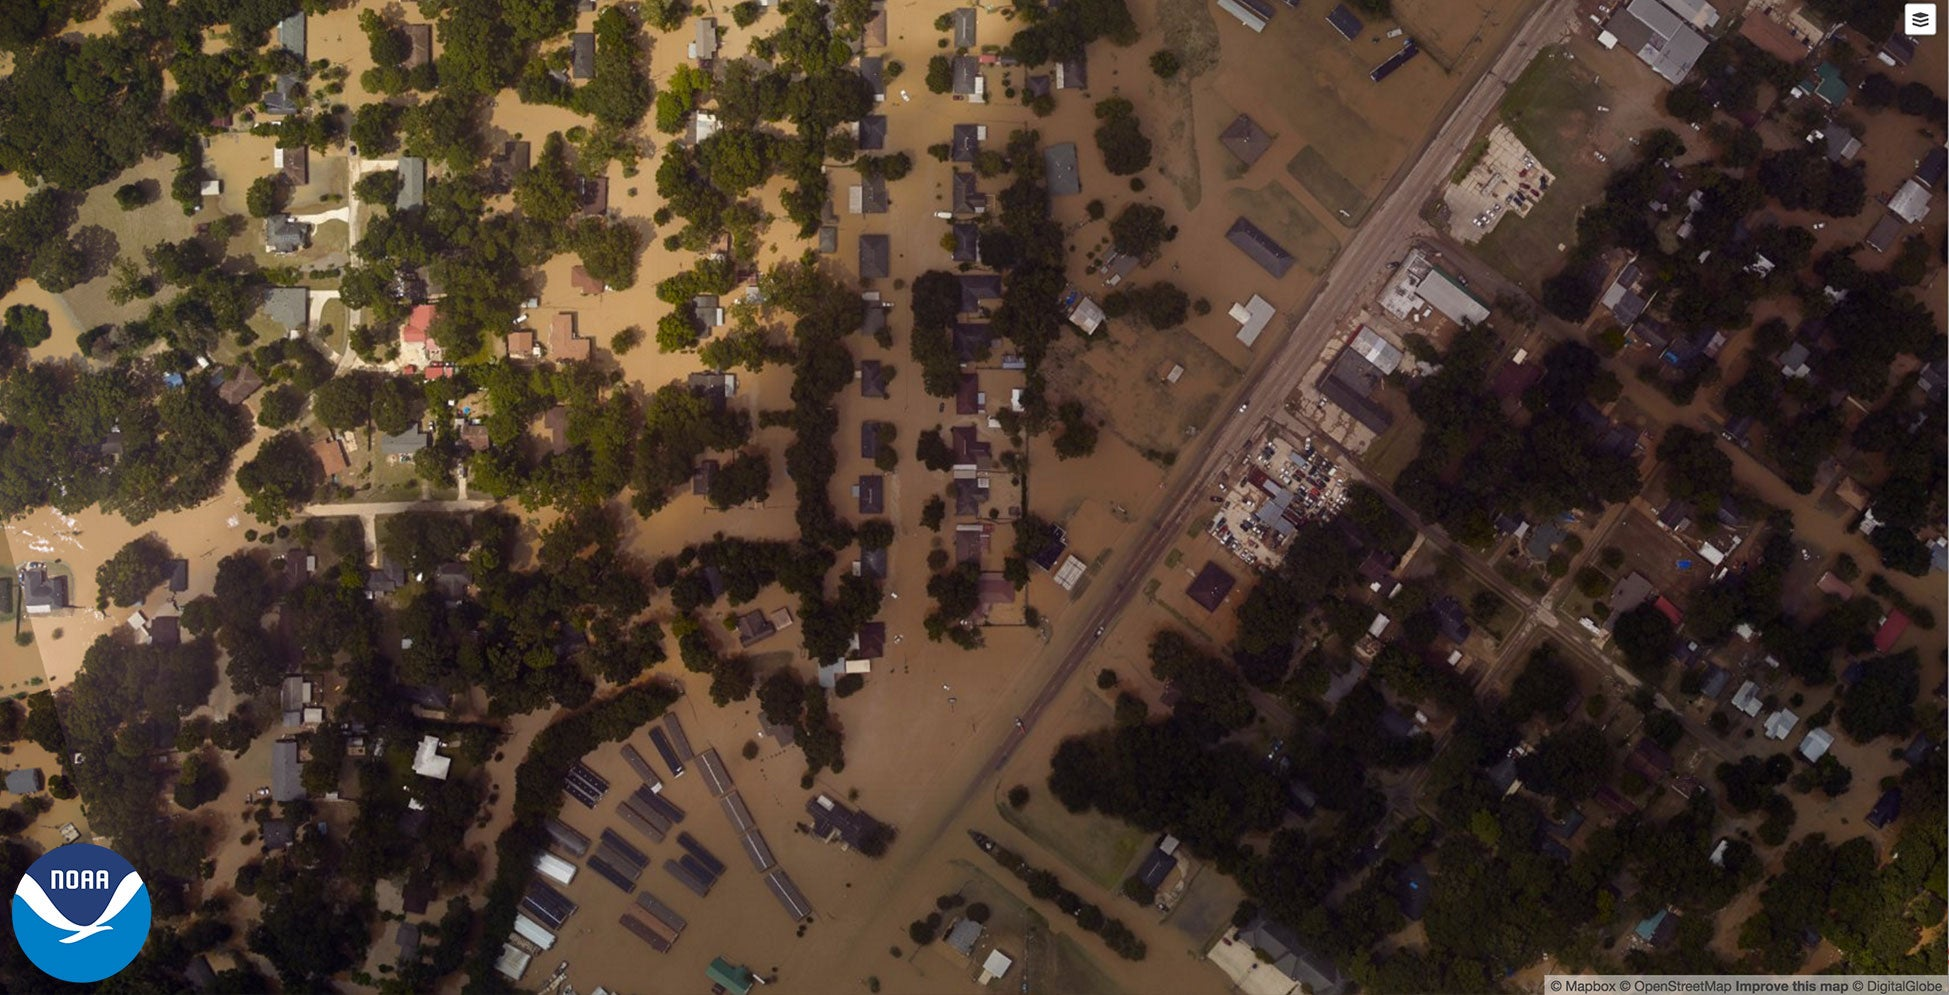 NOAA Captures The Extent Of Louisiana's Flooding In Aerial Images